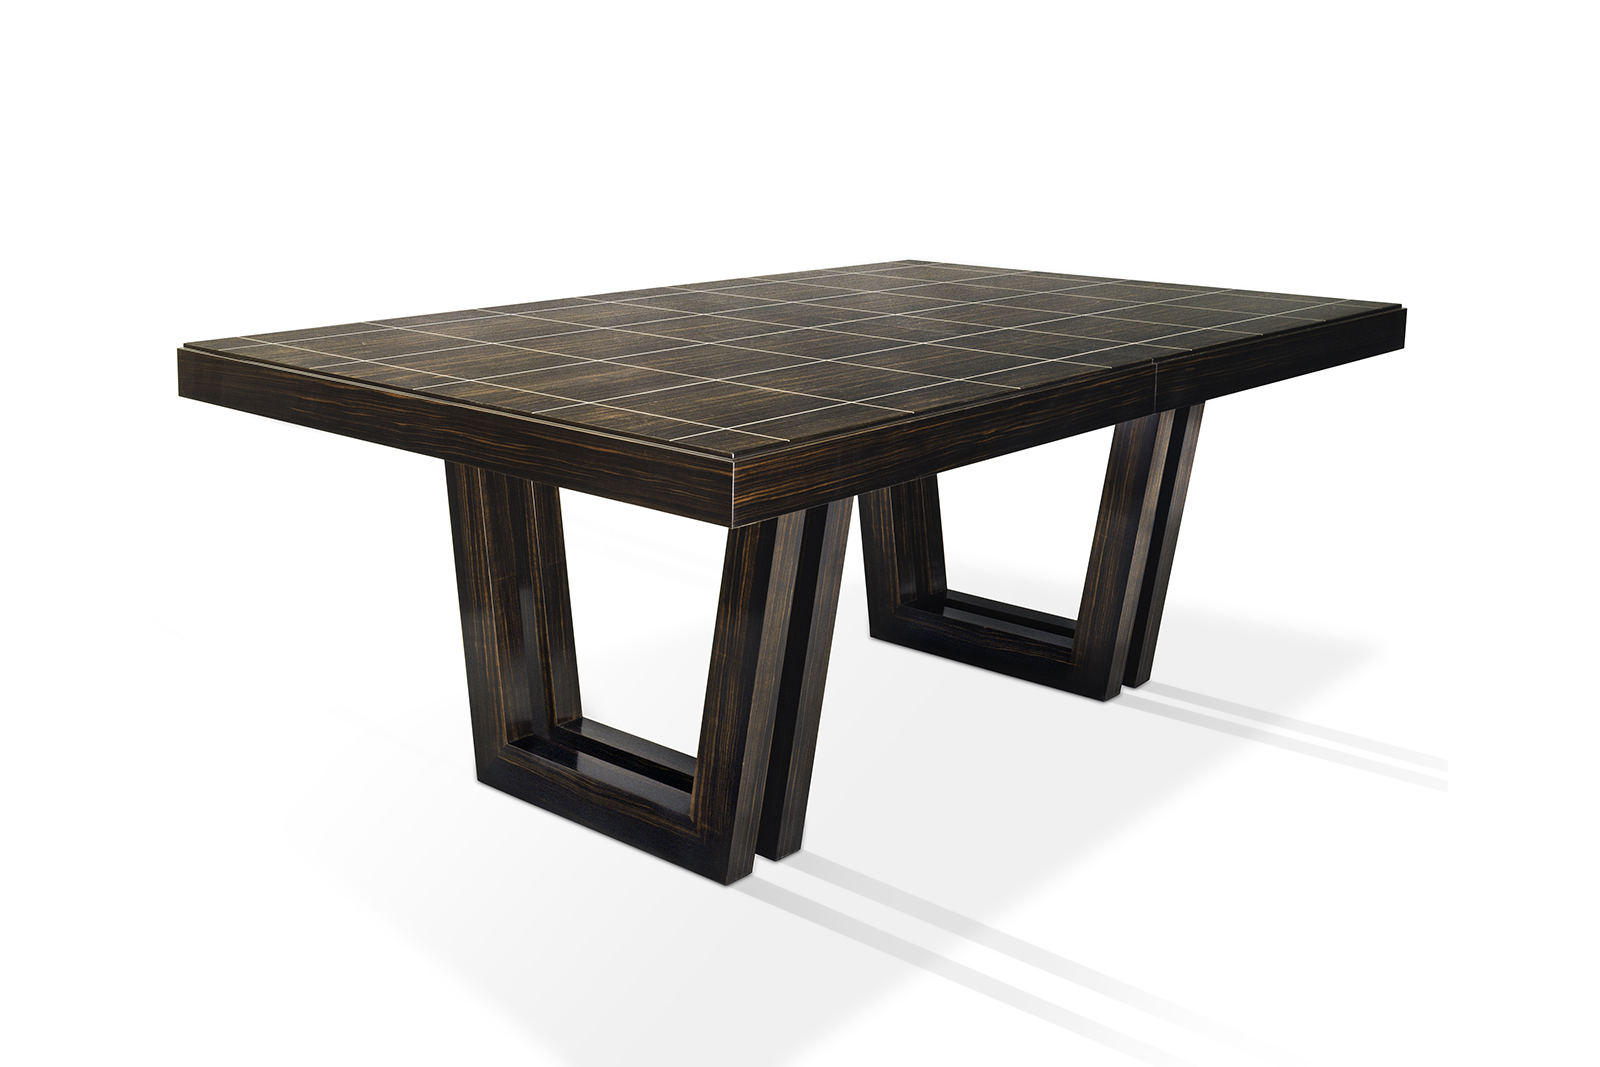 Dining Table Top In Macassar Ebony With Mother Of Pearl Inlay